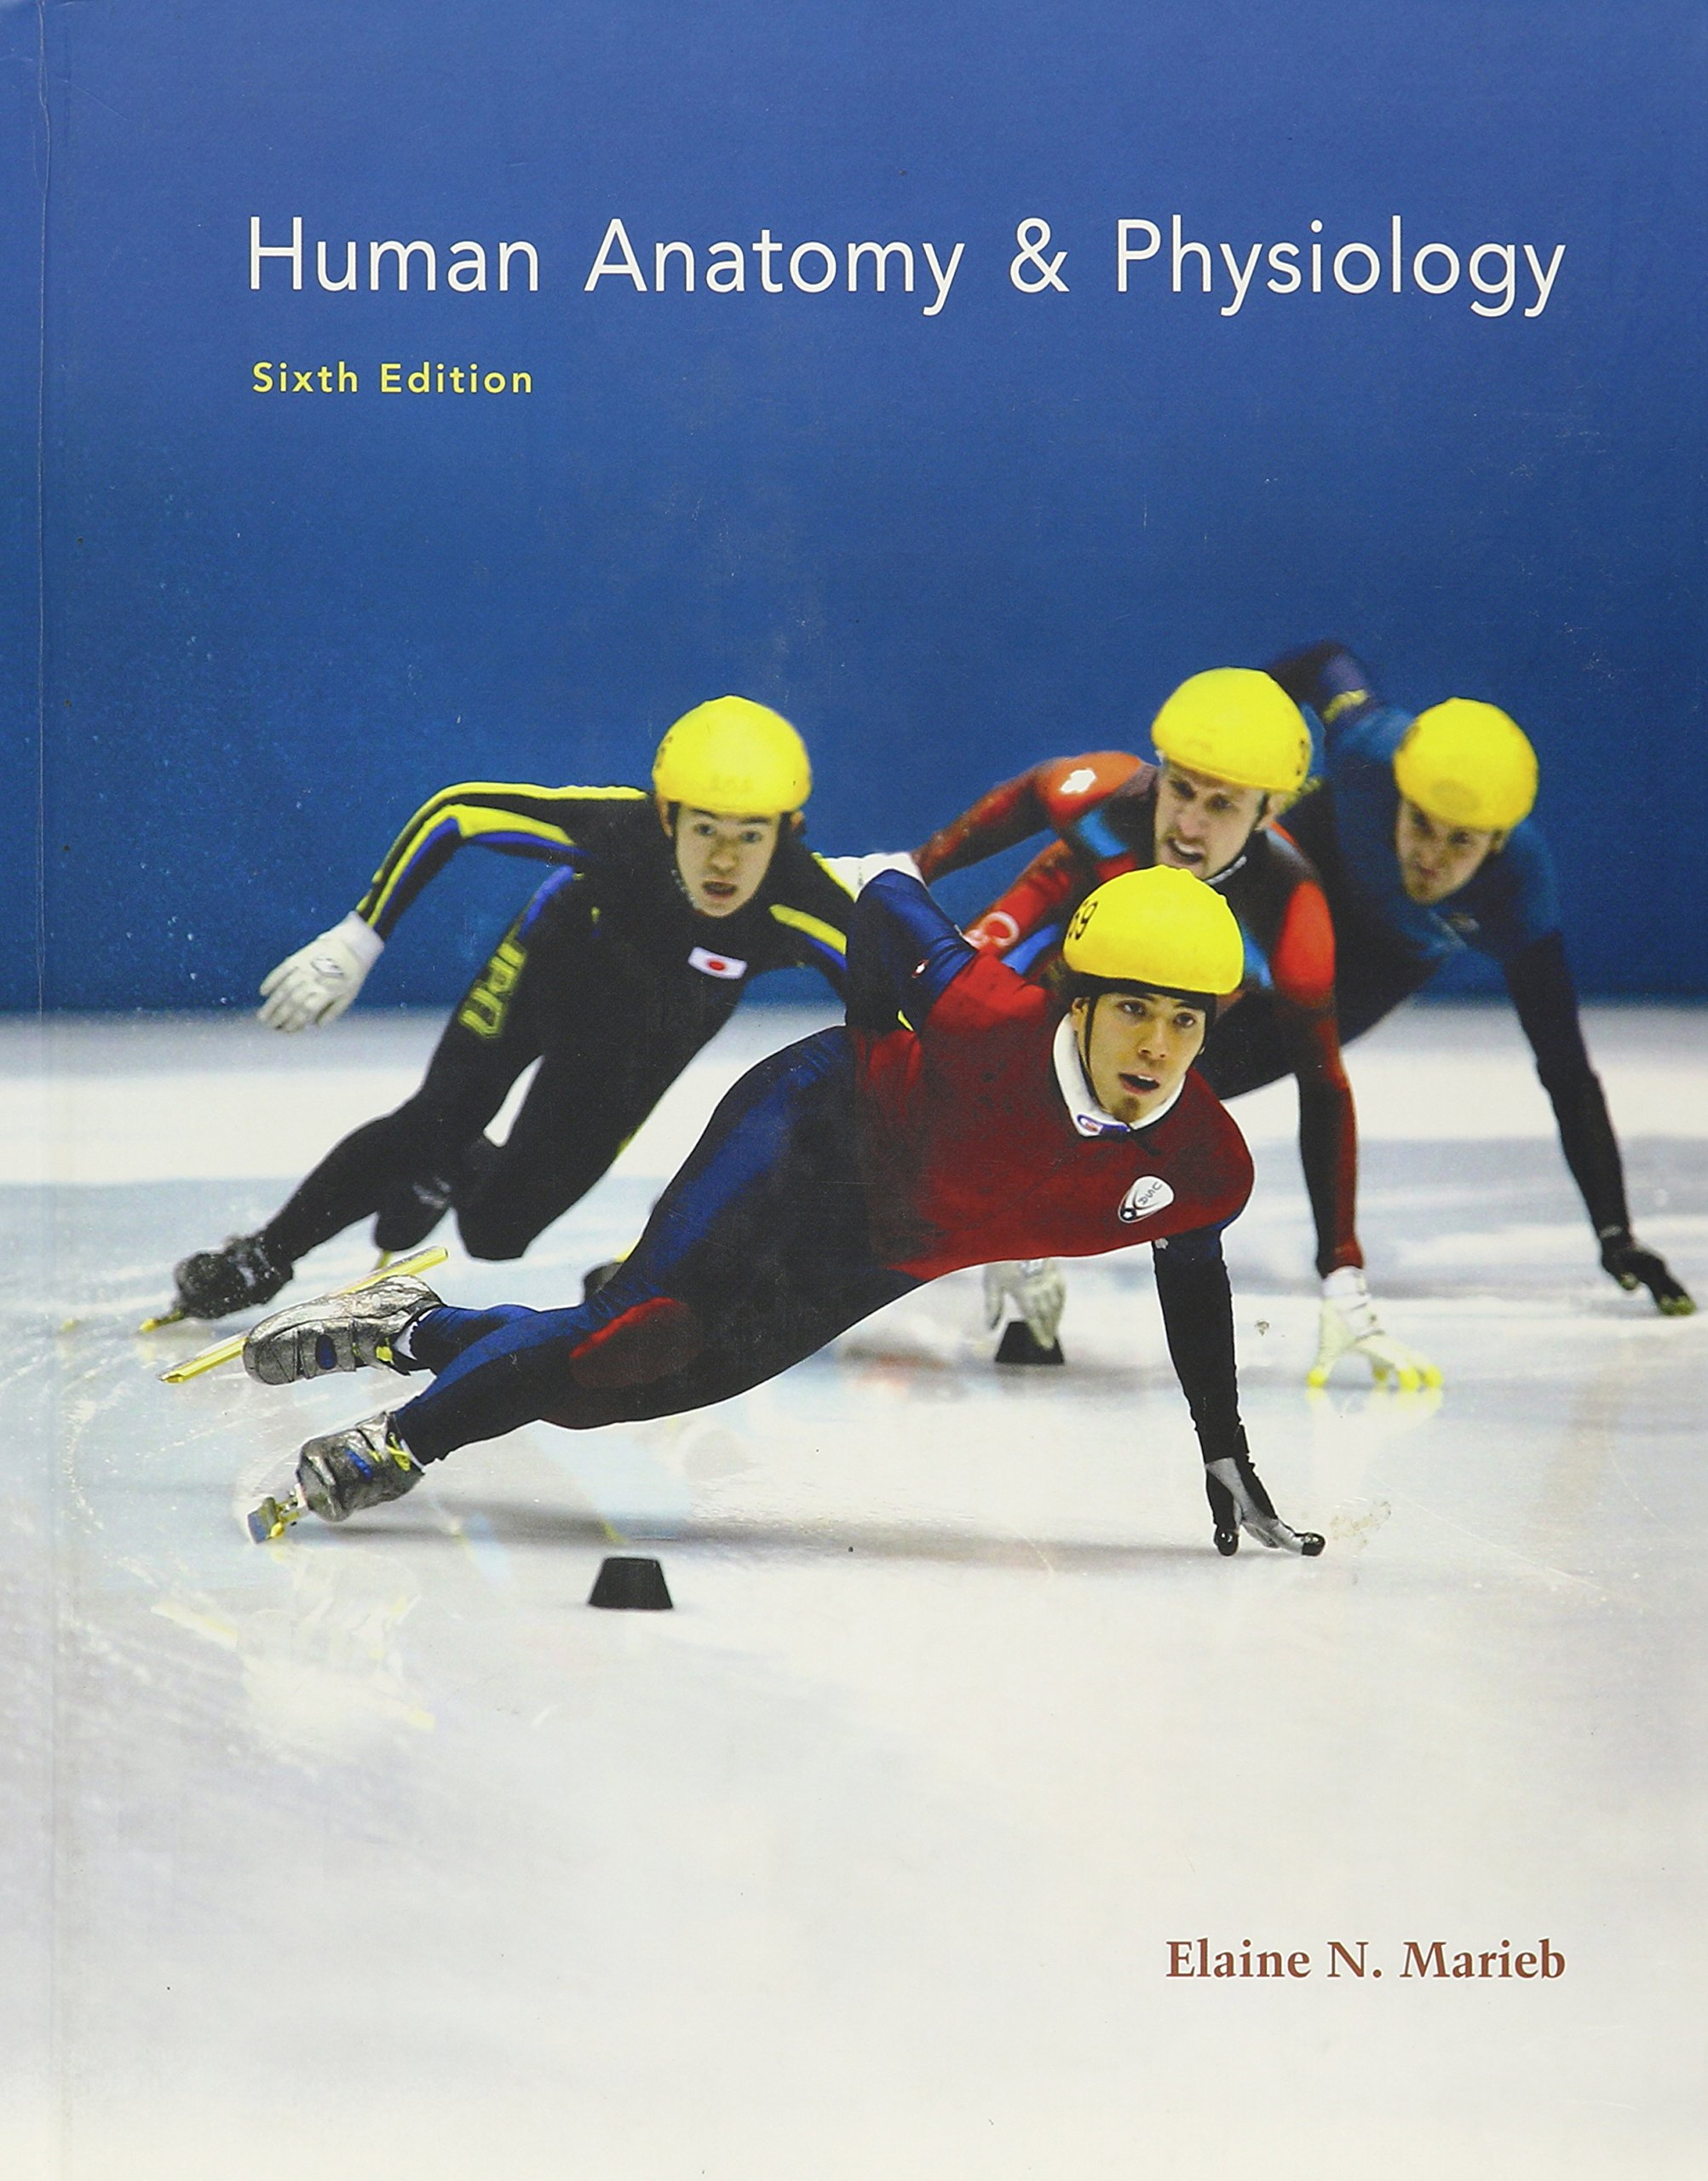 Human Anatomy and Physiology: Amazon.co.uk: Elaine N. Marieb ...